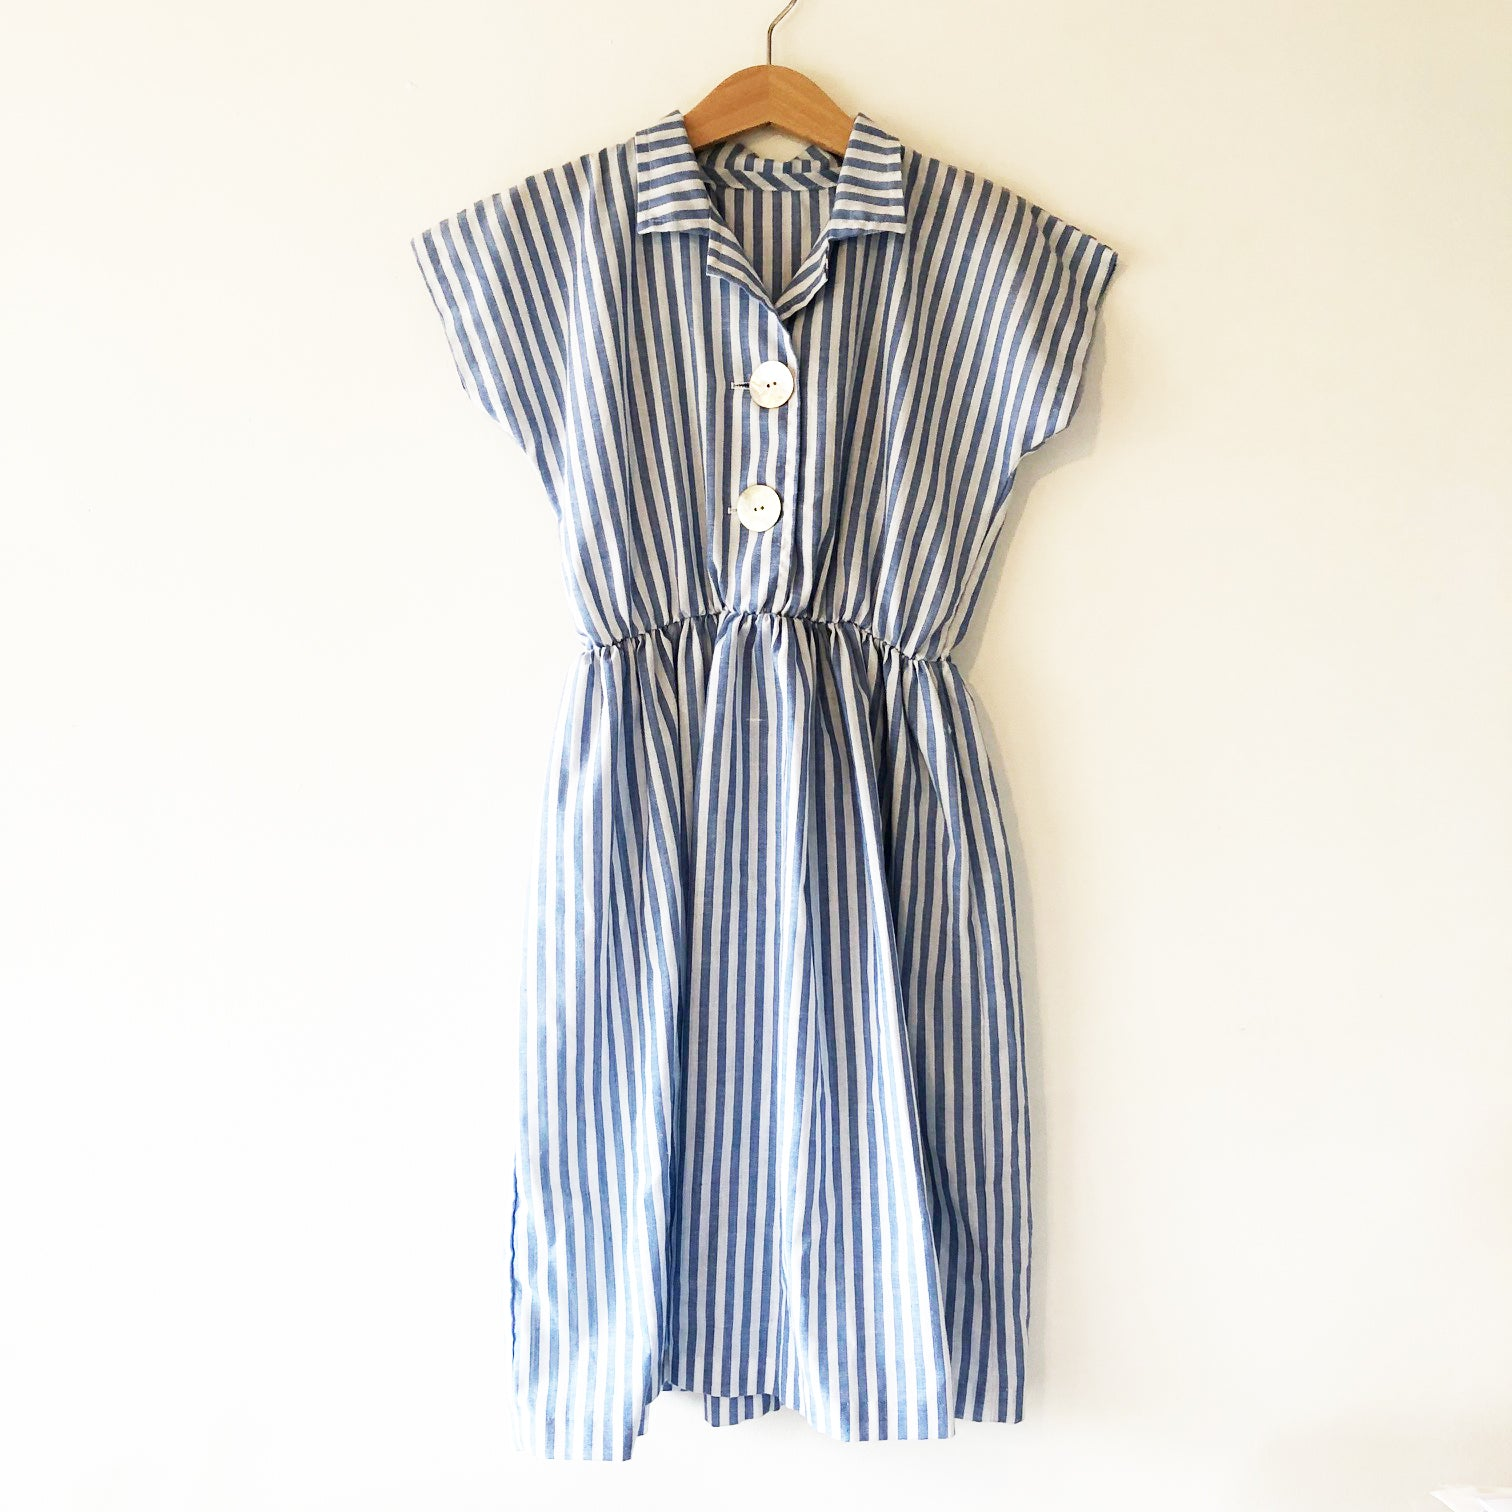 Vintage Stripe Dress size 8-10